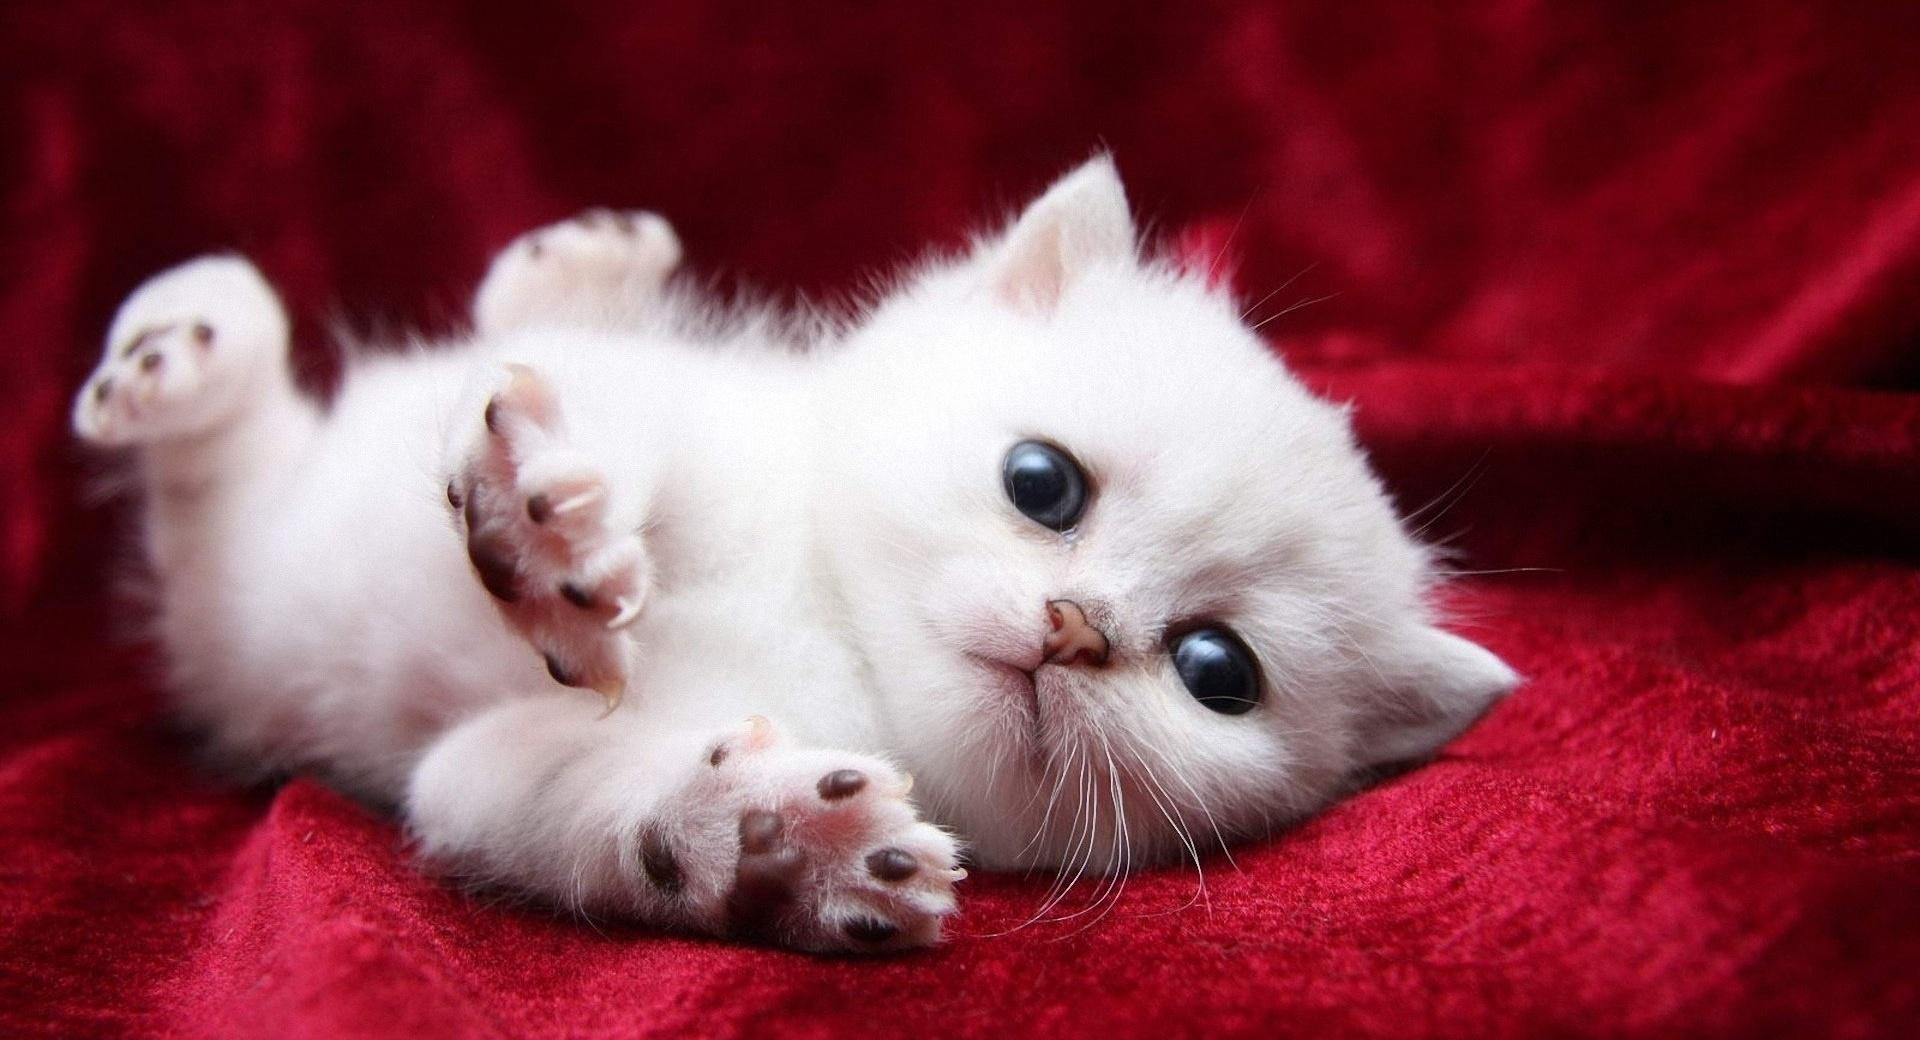 Kitten Begging Cutely wallpapers HD quality